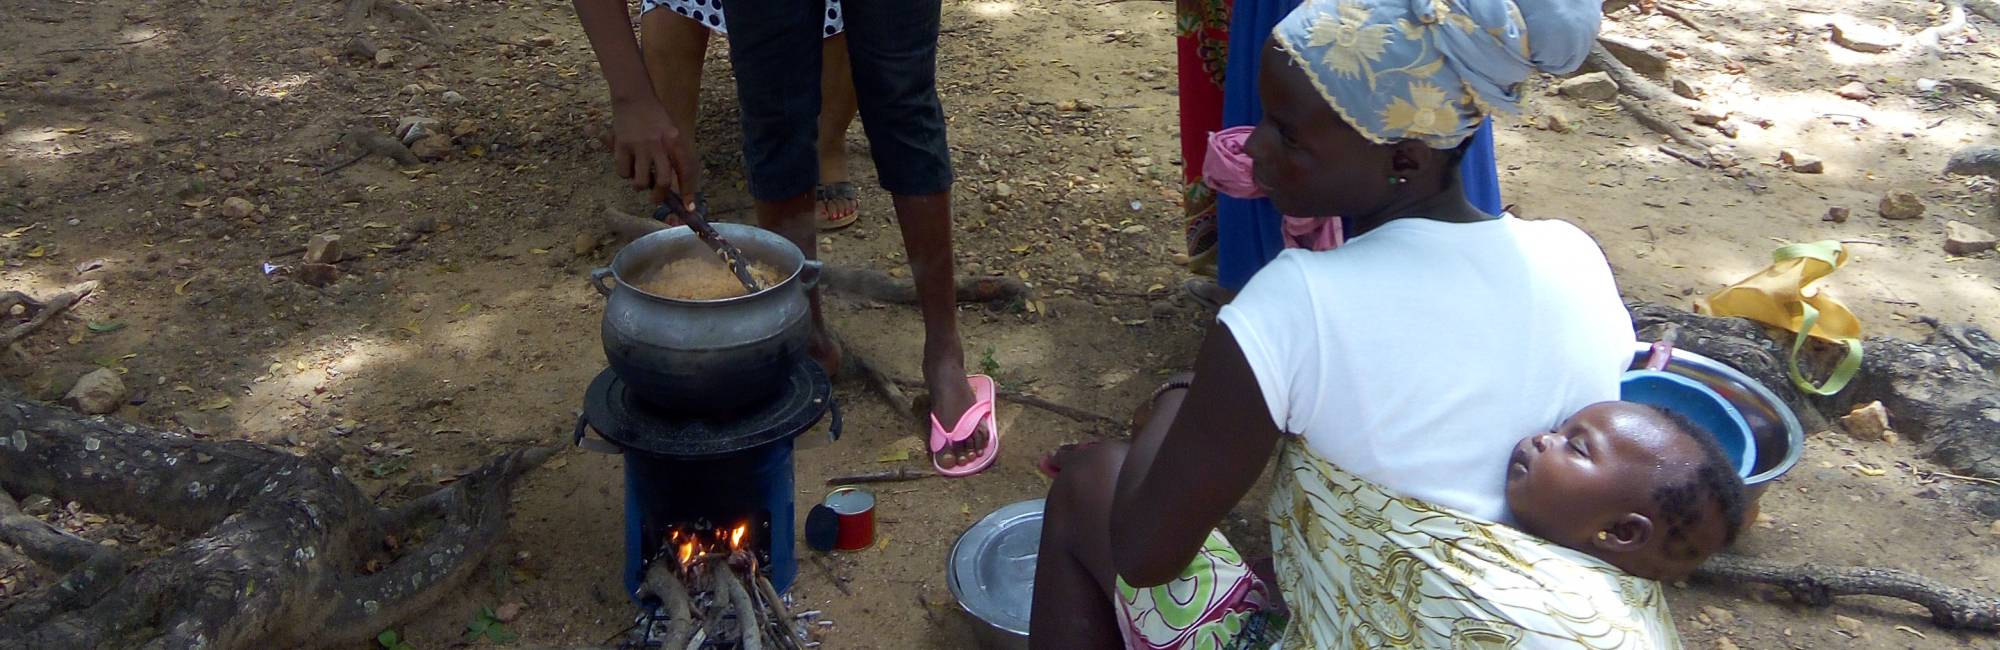 Women in Northern Ghana test out an improved wood stove during a focus group session (October 2016)